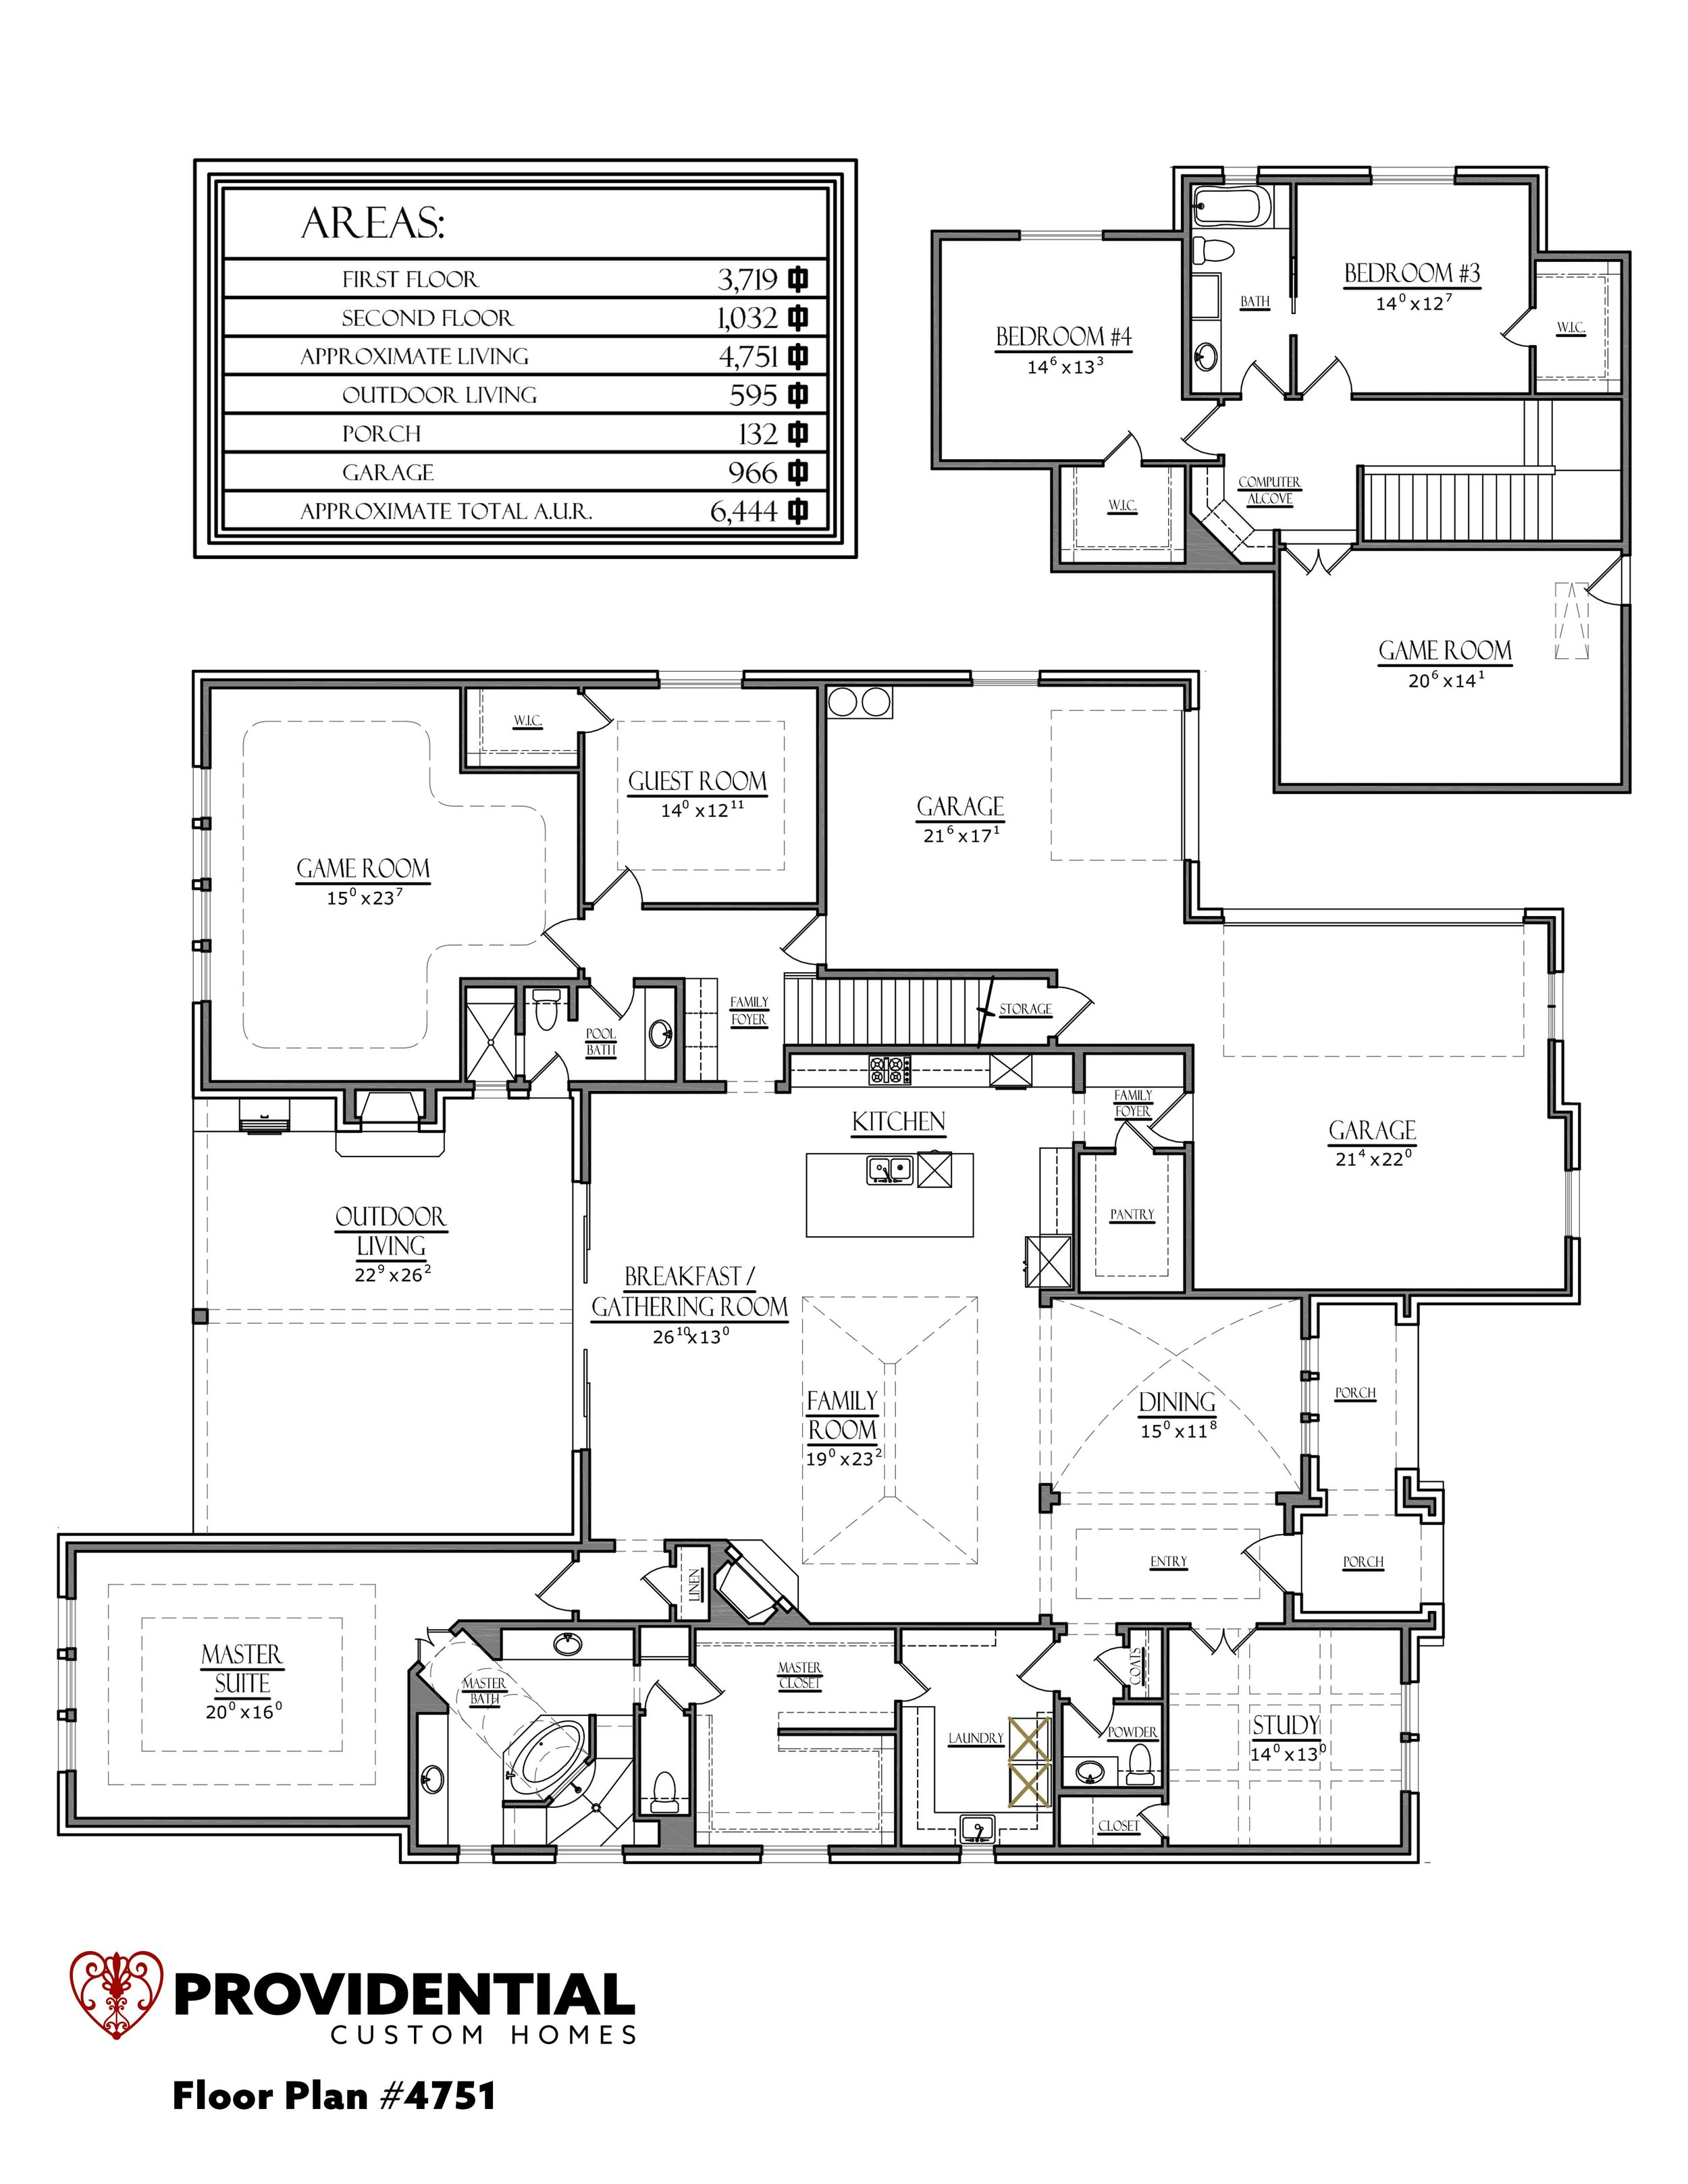 The FLOOR PLAN #4751.jpg